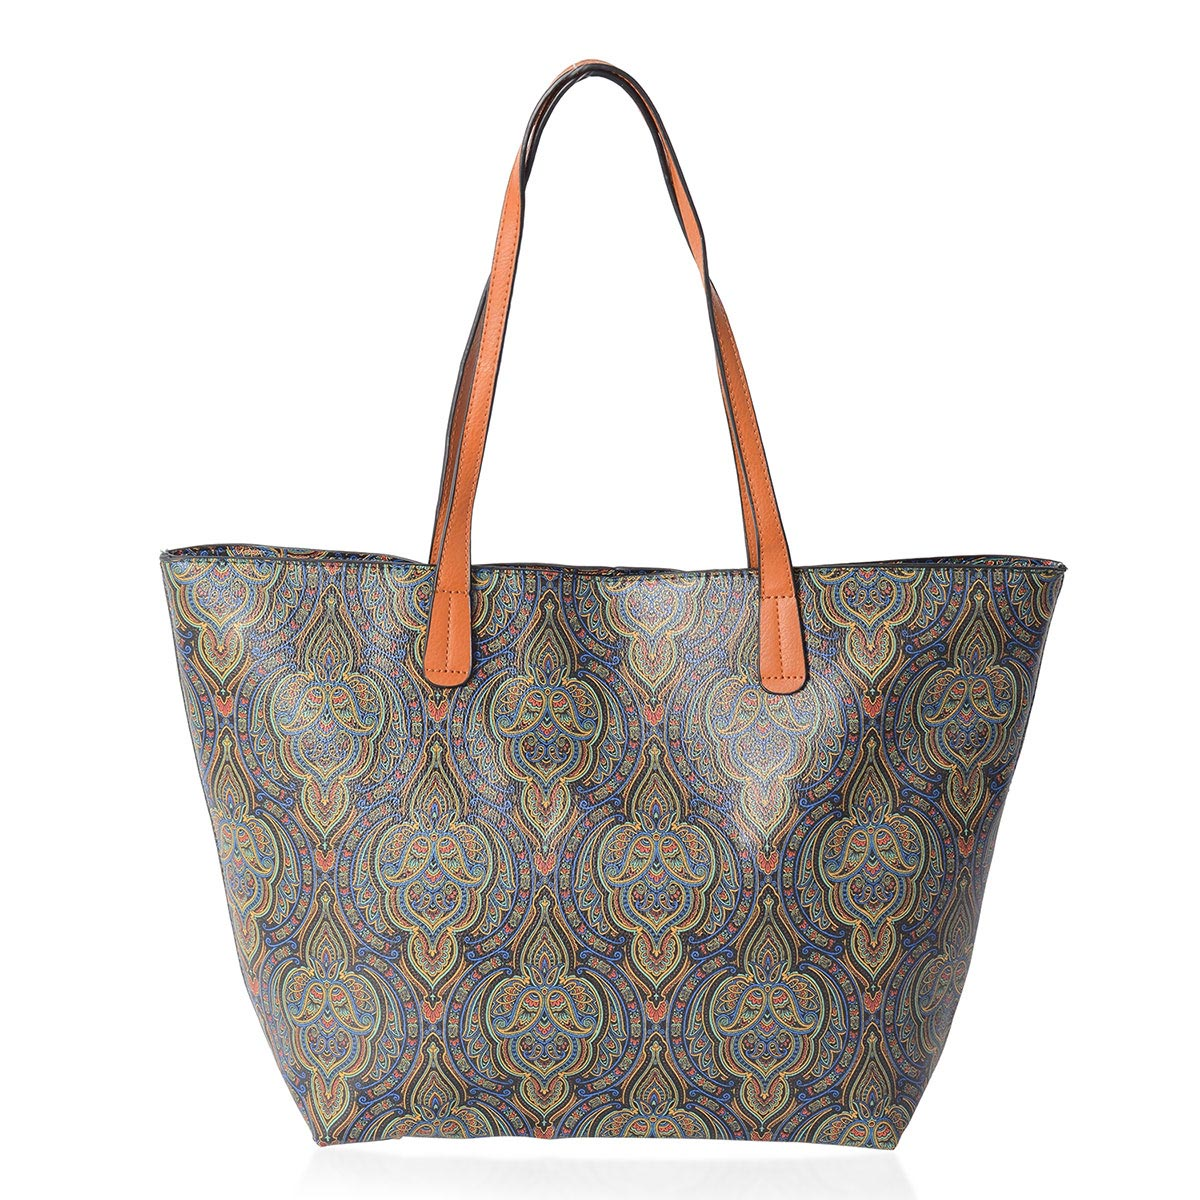 b923d032b3ad Blue and Light Yellow Floral Pattern Faux Leather Tote Bag (18.5x12x12 in)